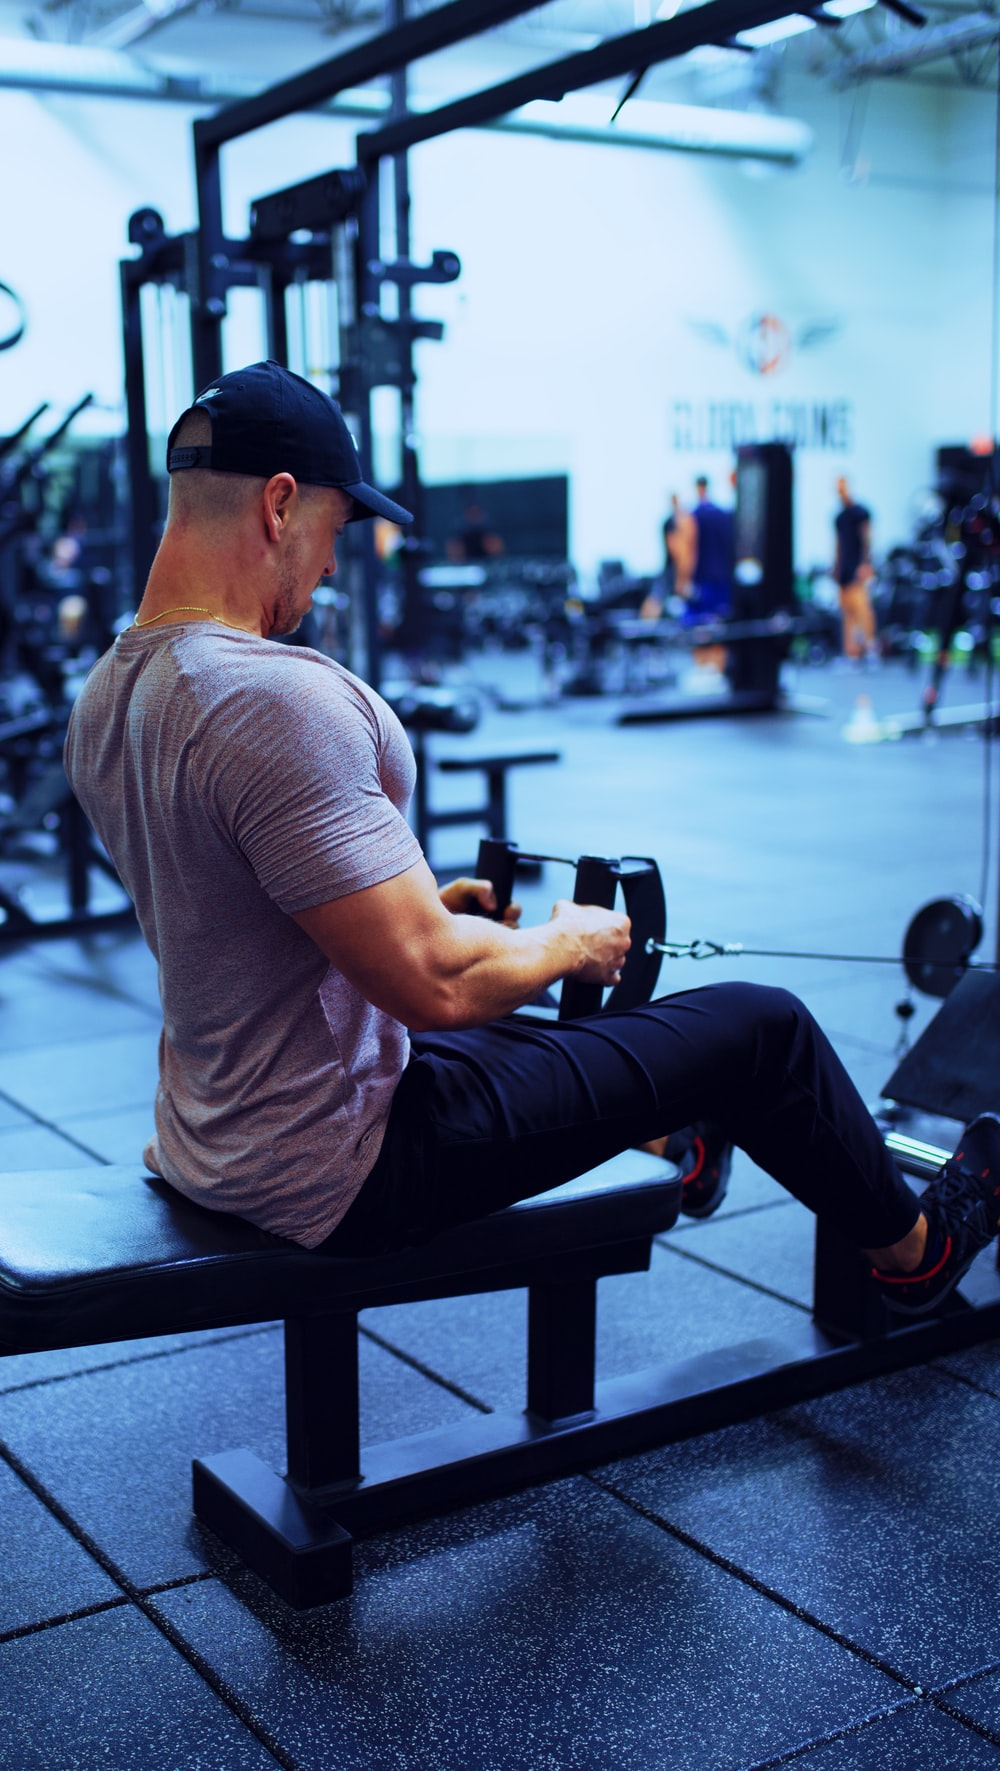 man in gray t-shirt and blue denim jeans sitting on bench